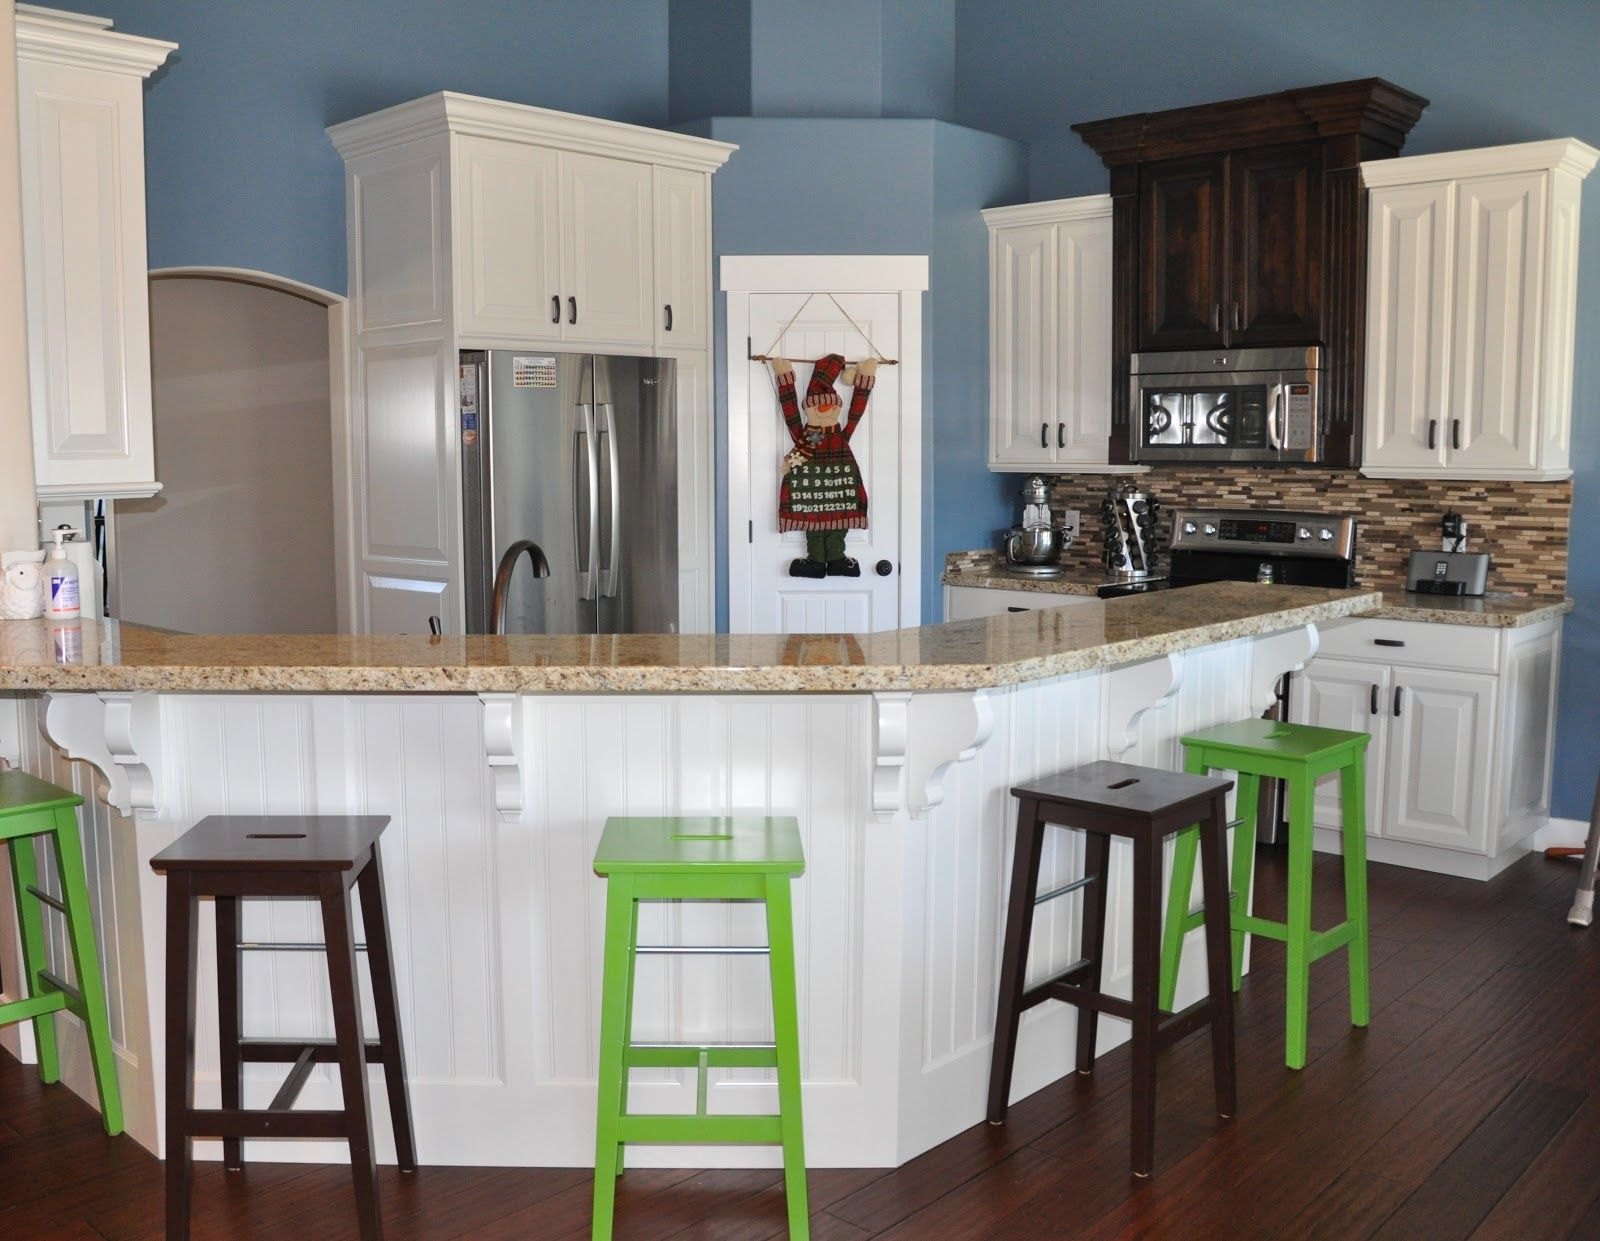 Off white kitchen cabinets kitchen cabinets off white with black walnut hood